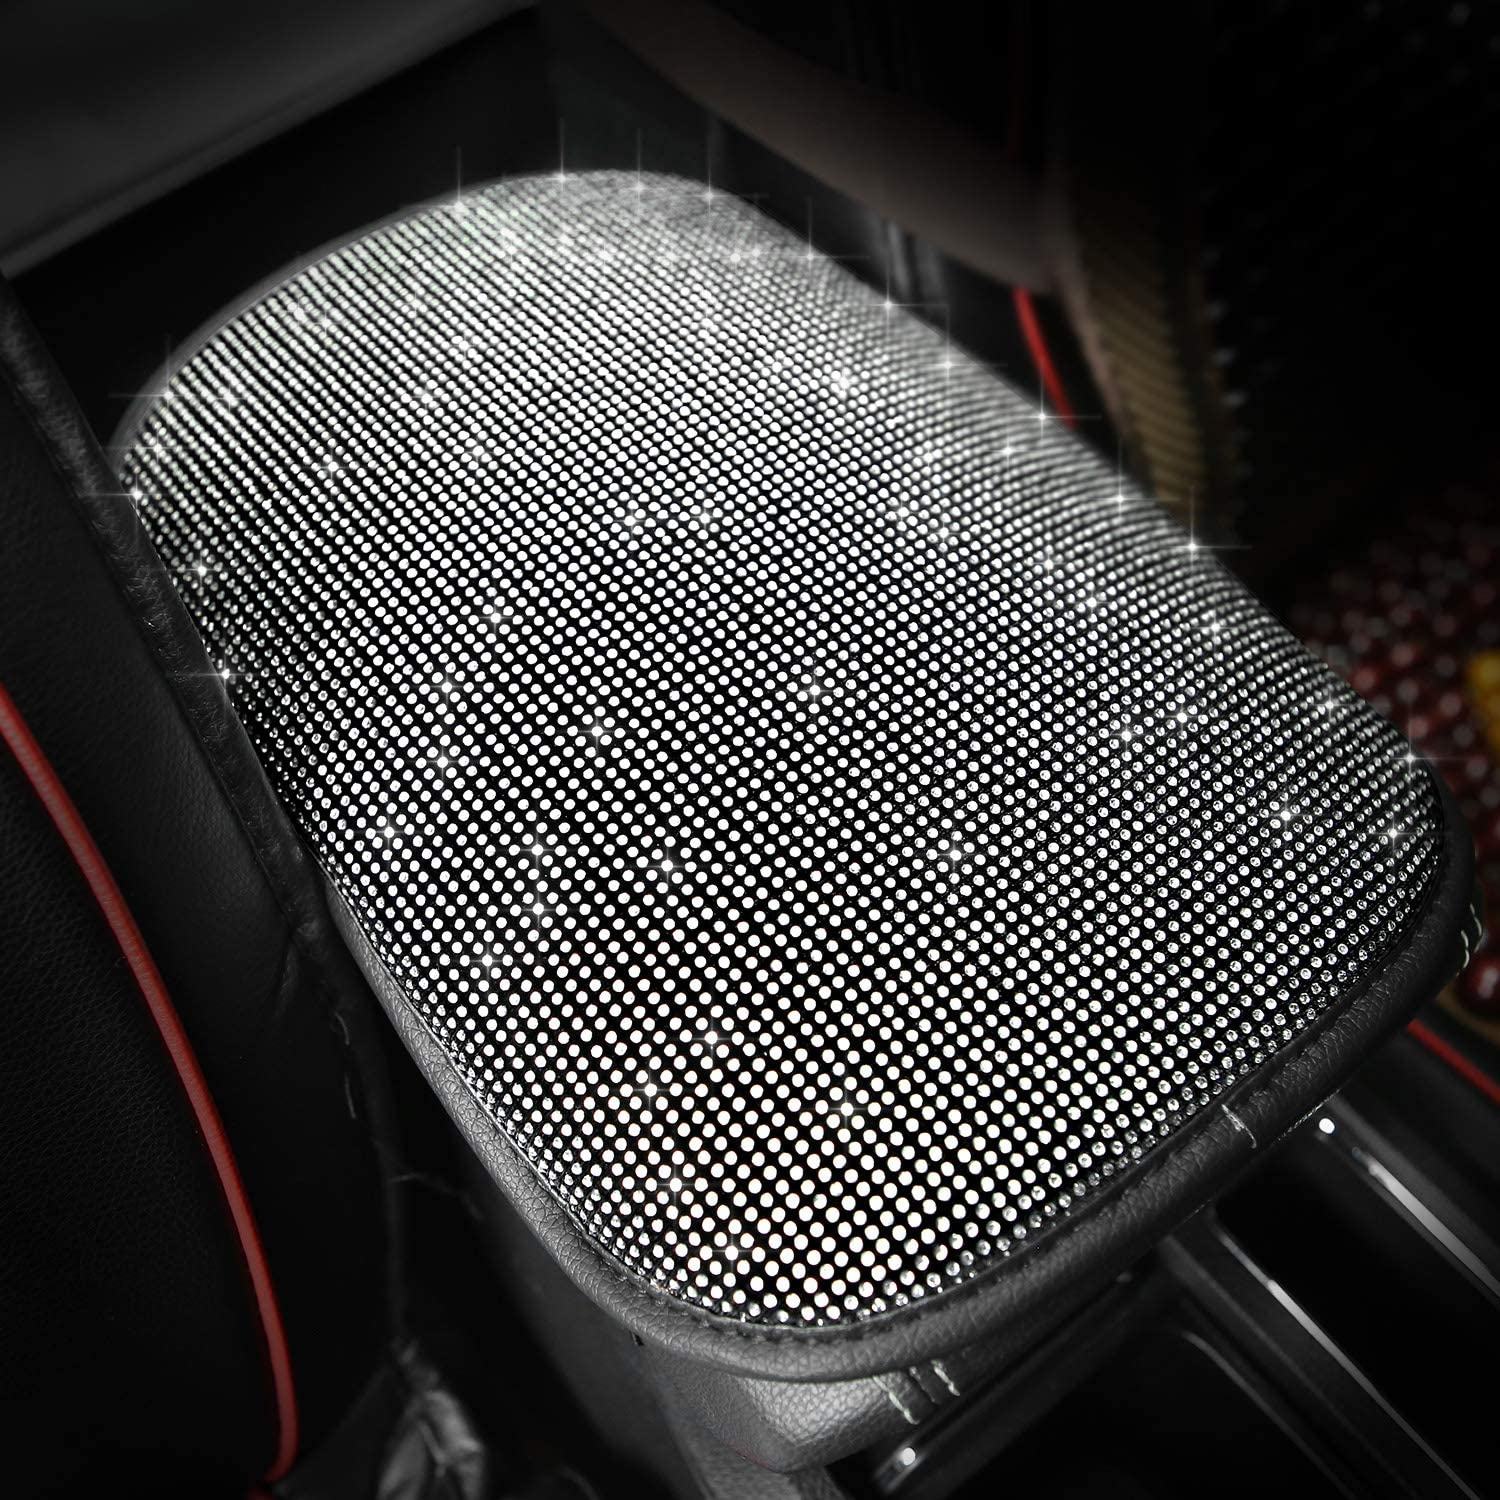 Bling-Colouful Waterproof Center Console Cover Armrest Protector for Most Vehicle SUV Truck Meserparts Bling Auto Center Console Pad Diamond Crystal PU Leather Universal Auto Armrest Cushion Pad